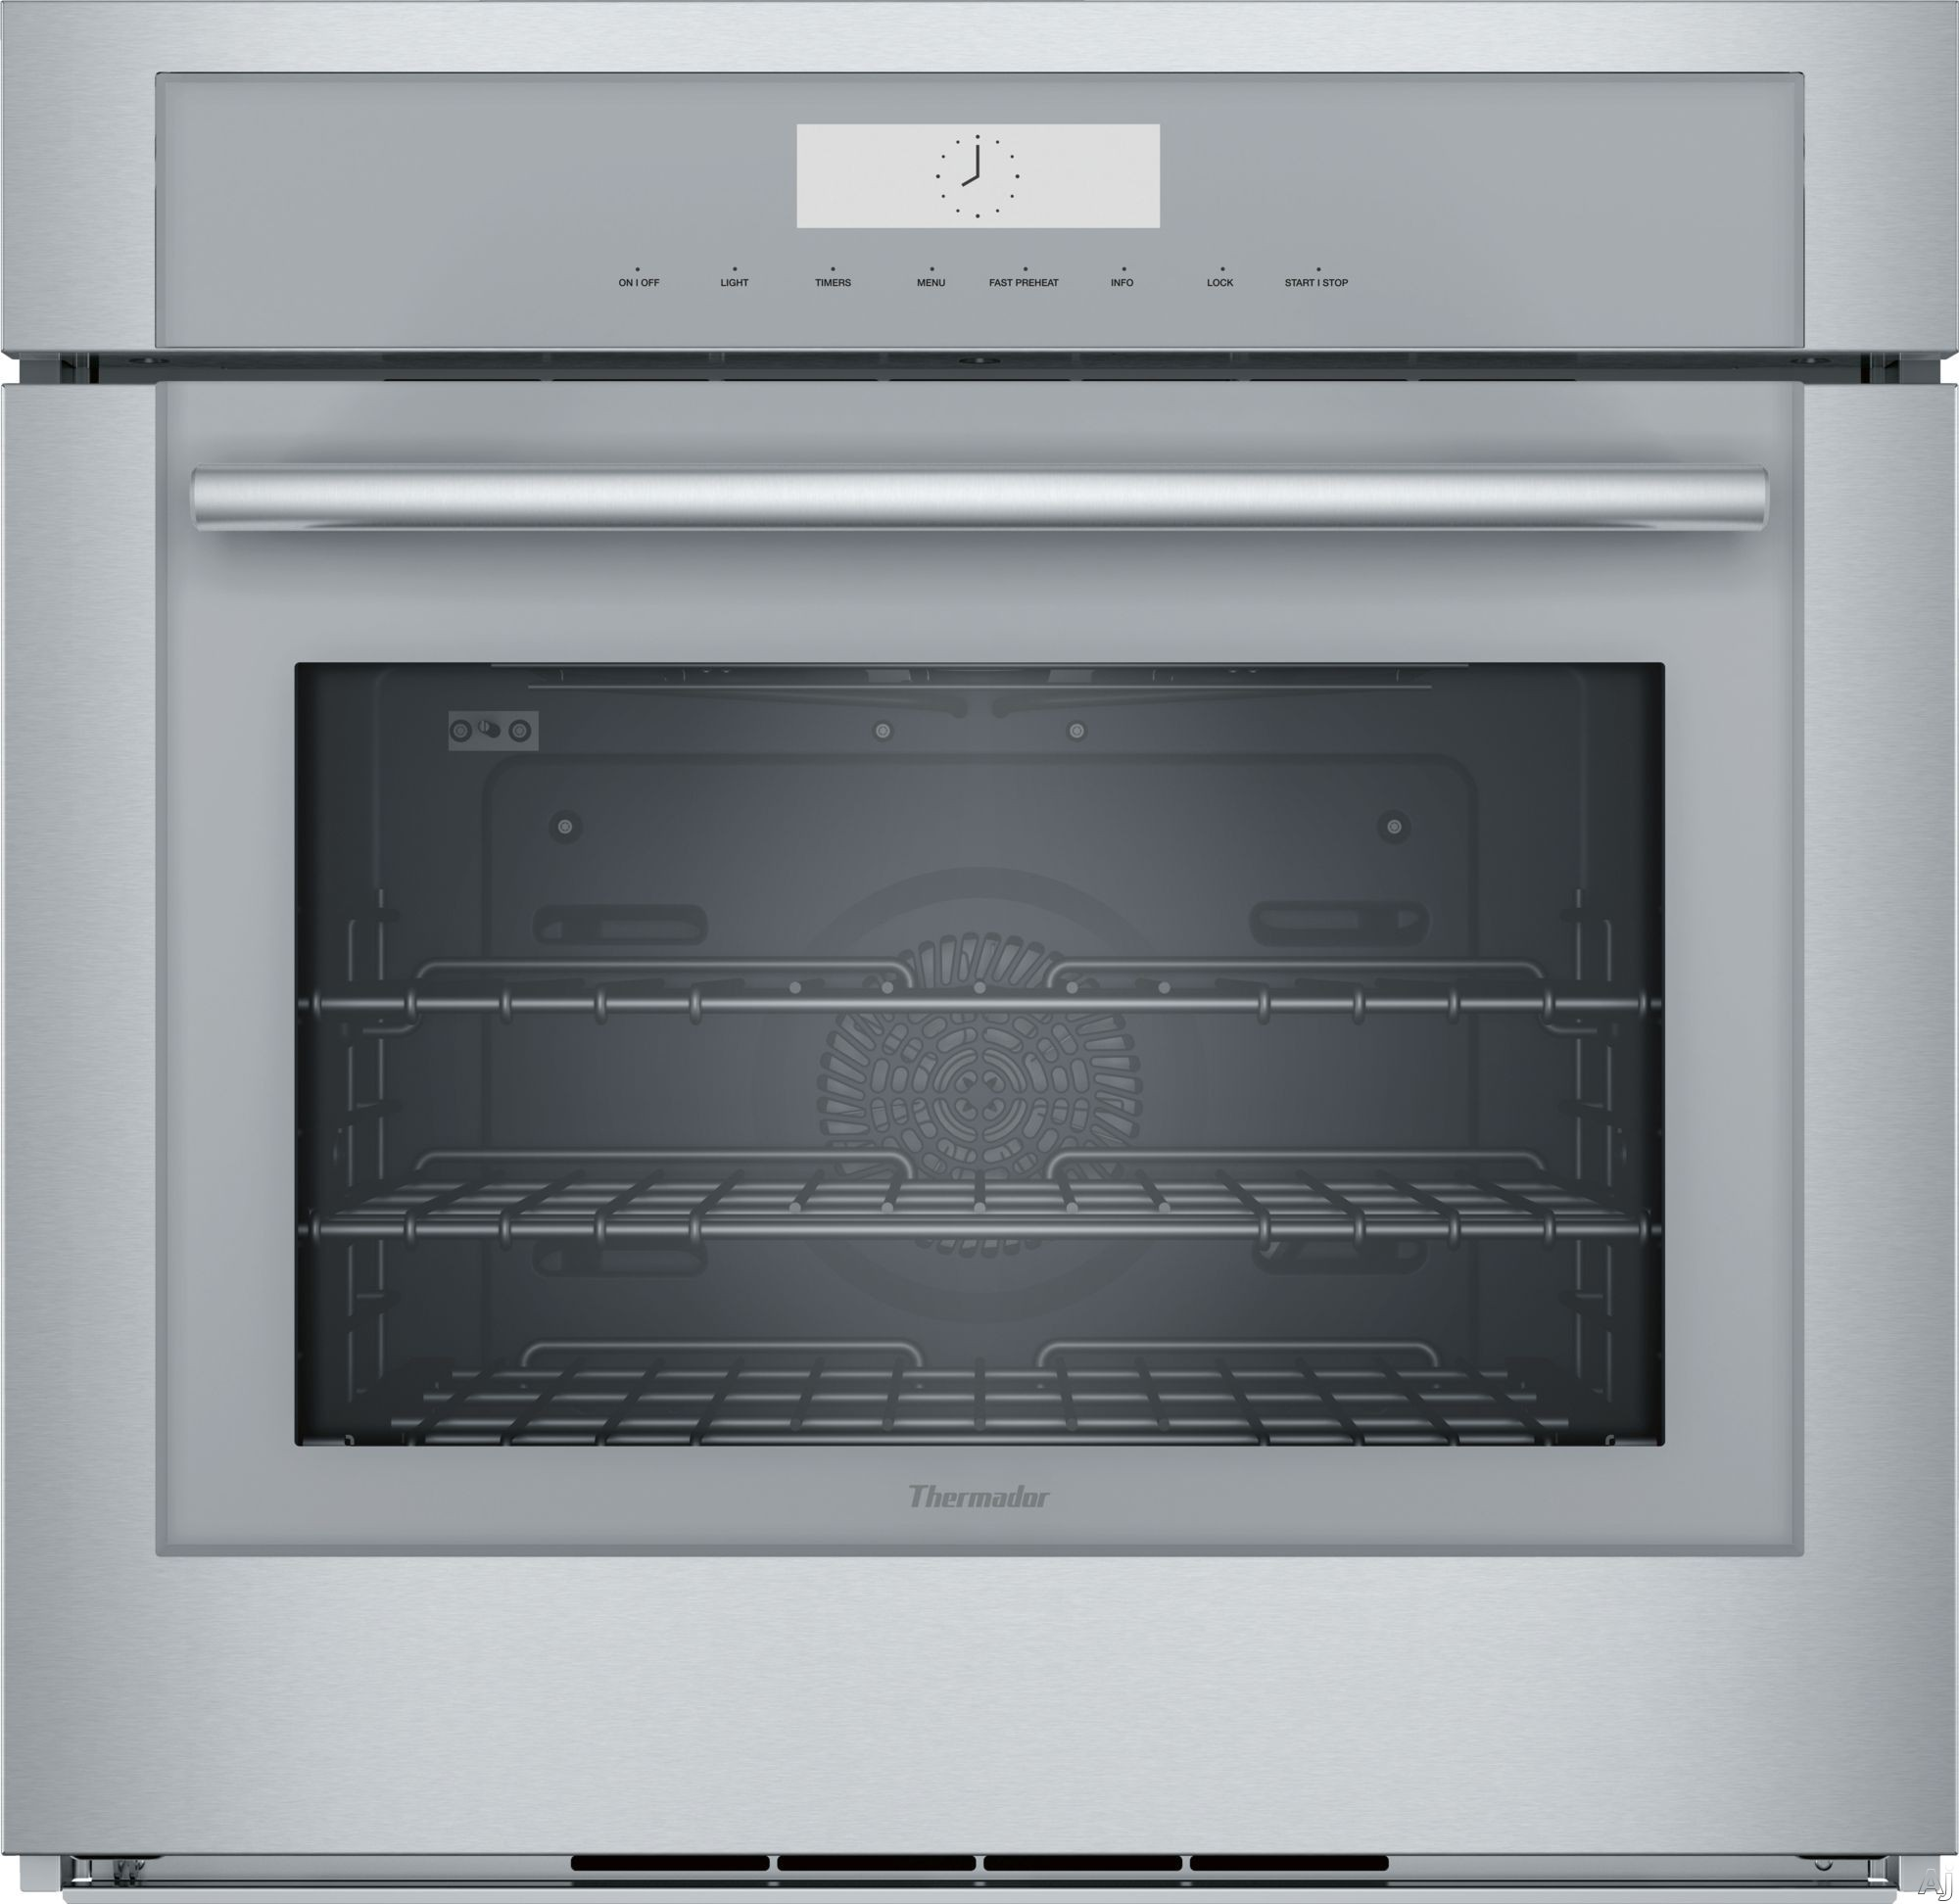 Thermador Masterpiece Series ME301WS 30 Inch Single Wall Oven with True Convection, 13 Heating Modes, Self-Clean, Hydraulic SoftClose® Hinges, Telescopic Rack, Halogen Light, Sabbath Mode and Wi-Fi